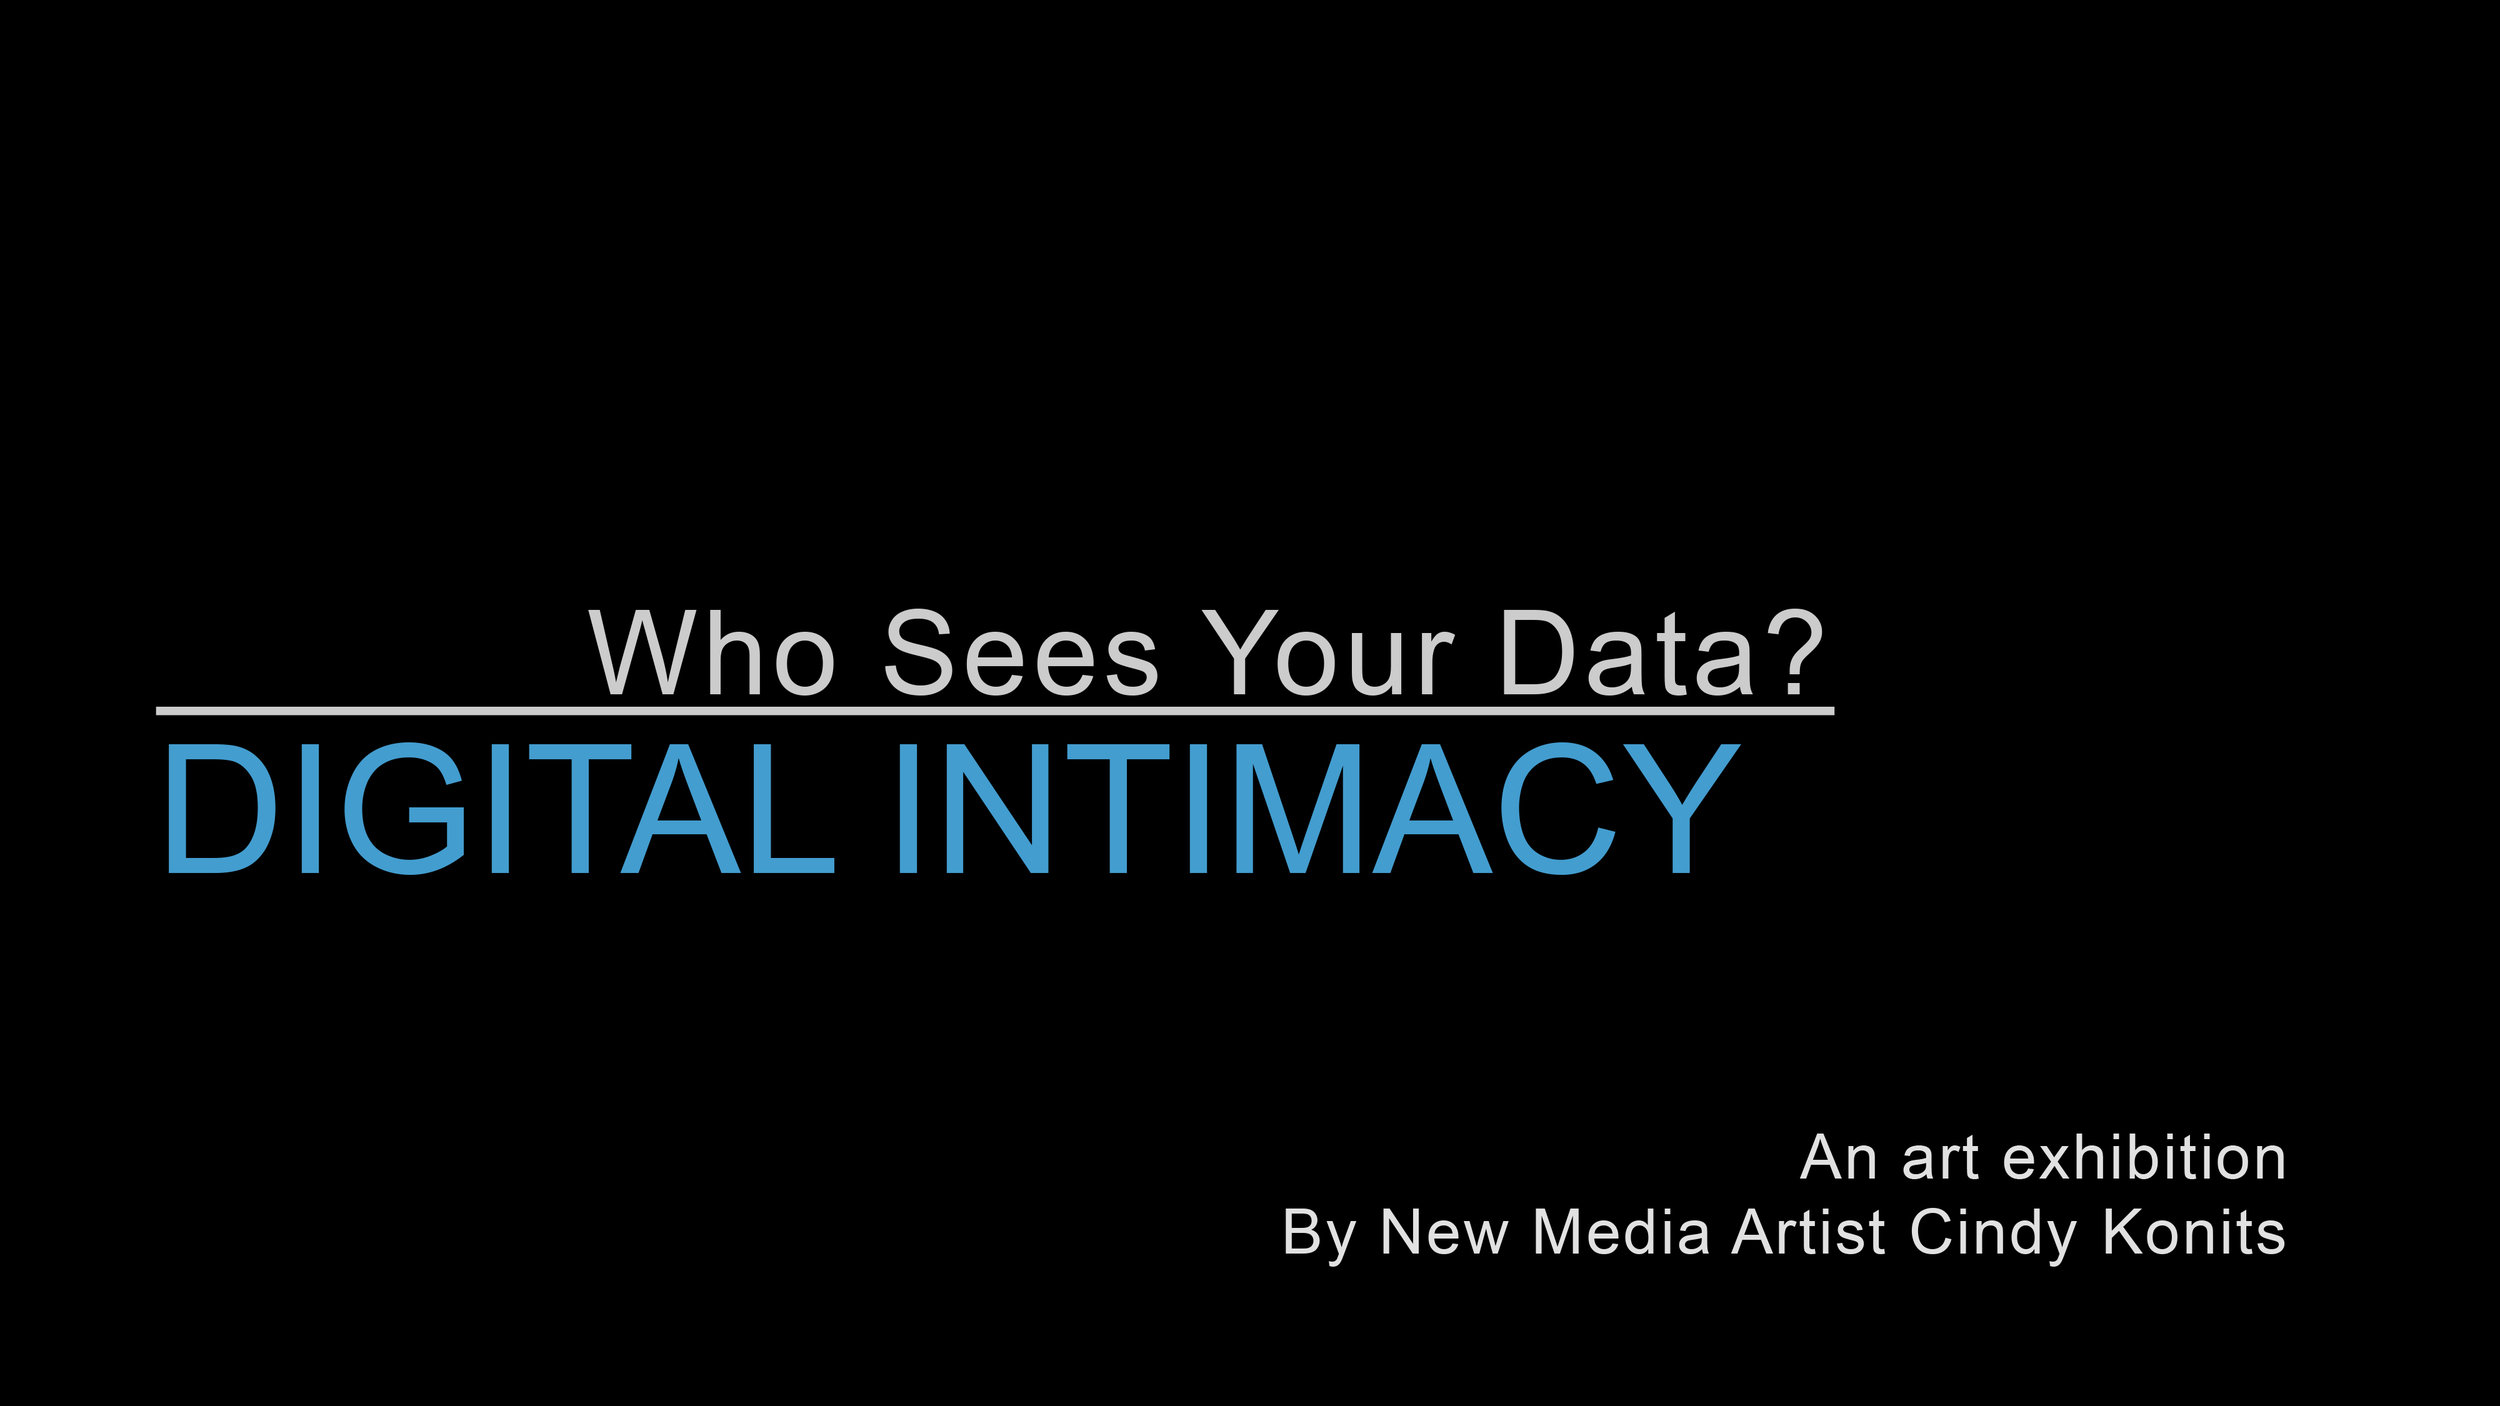 1.Who Sees Your Data.jpg